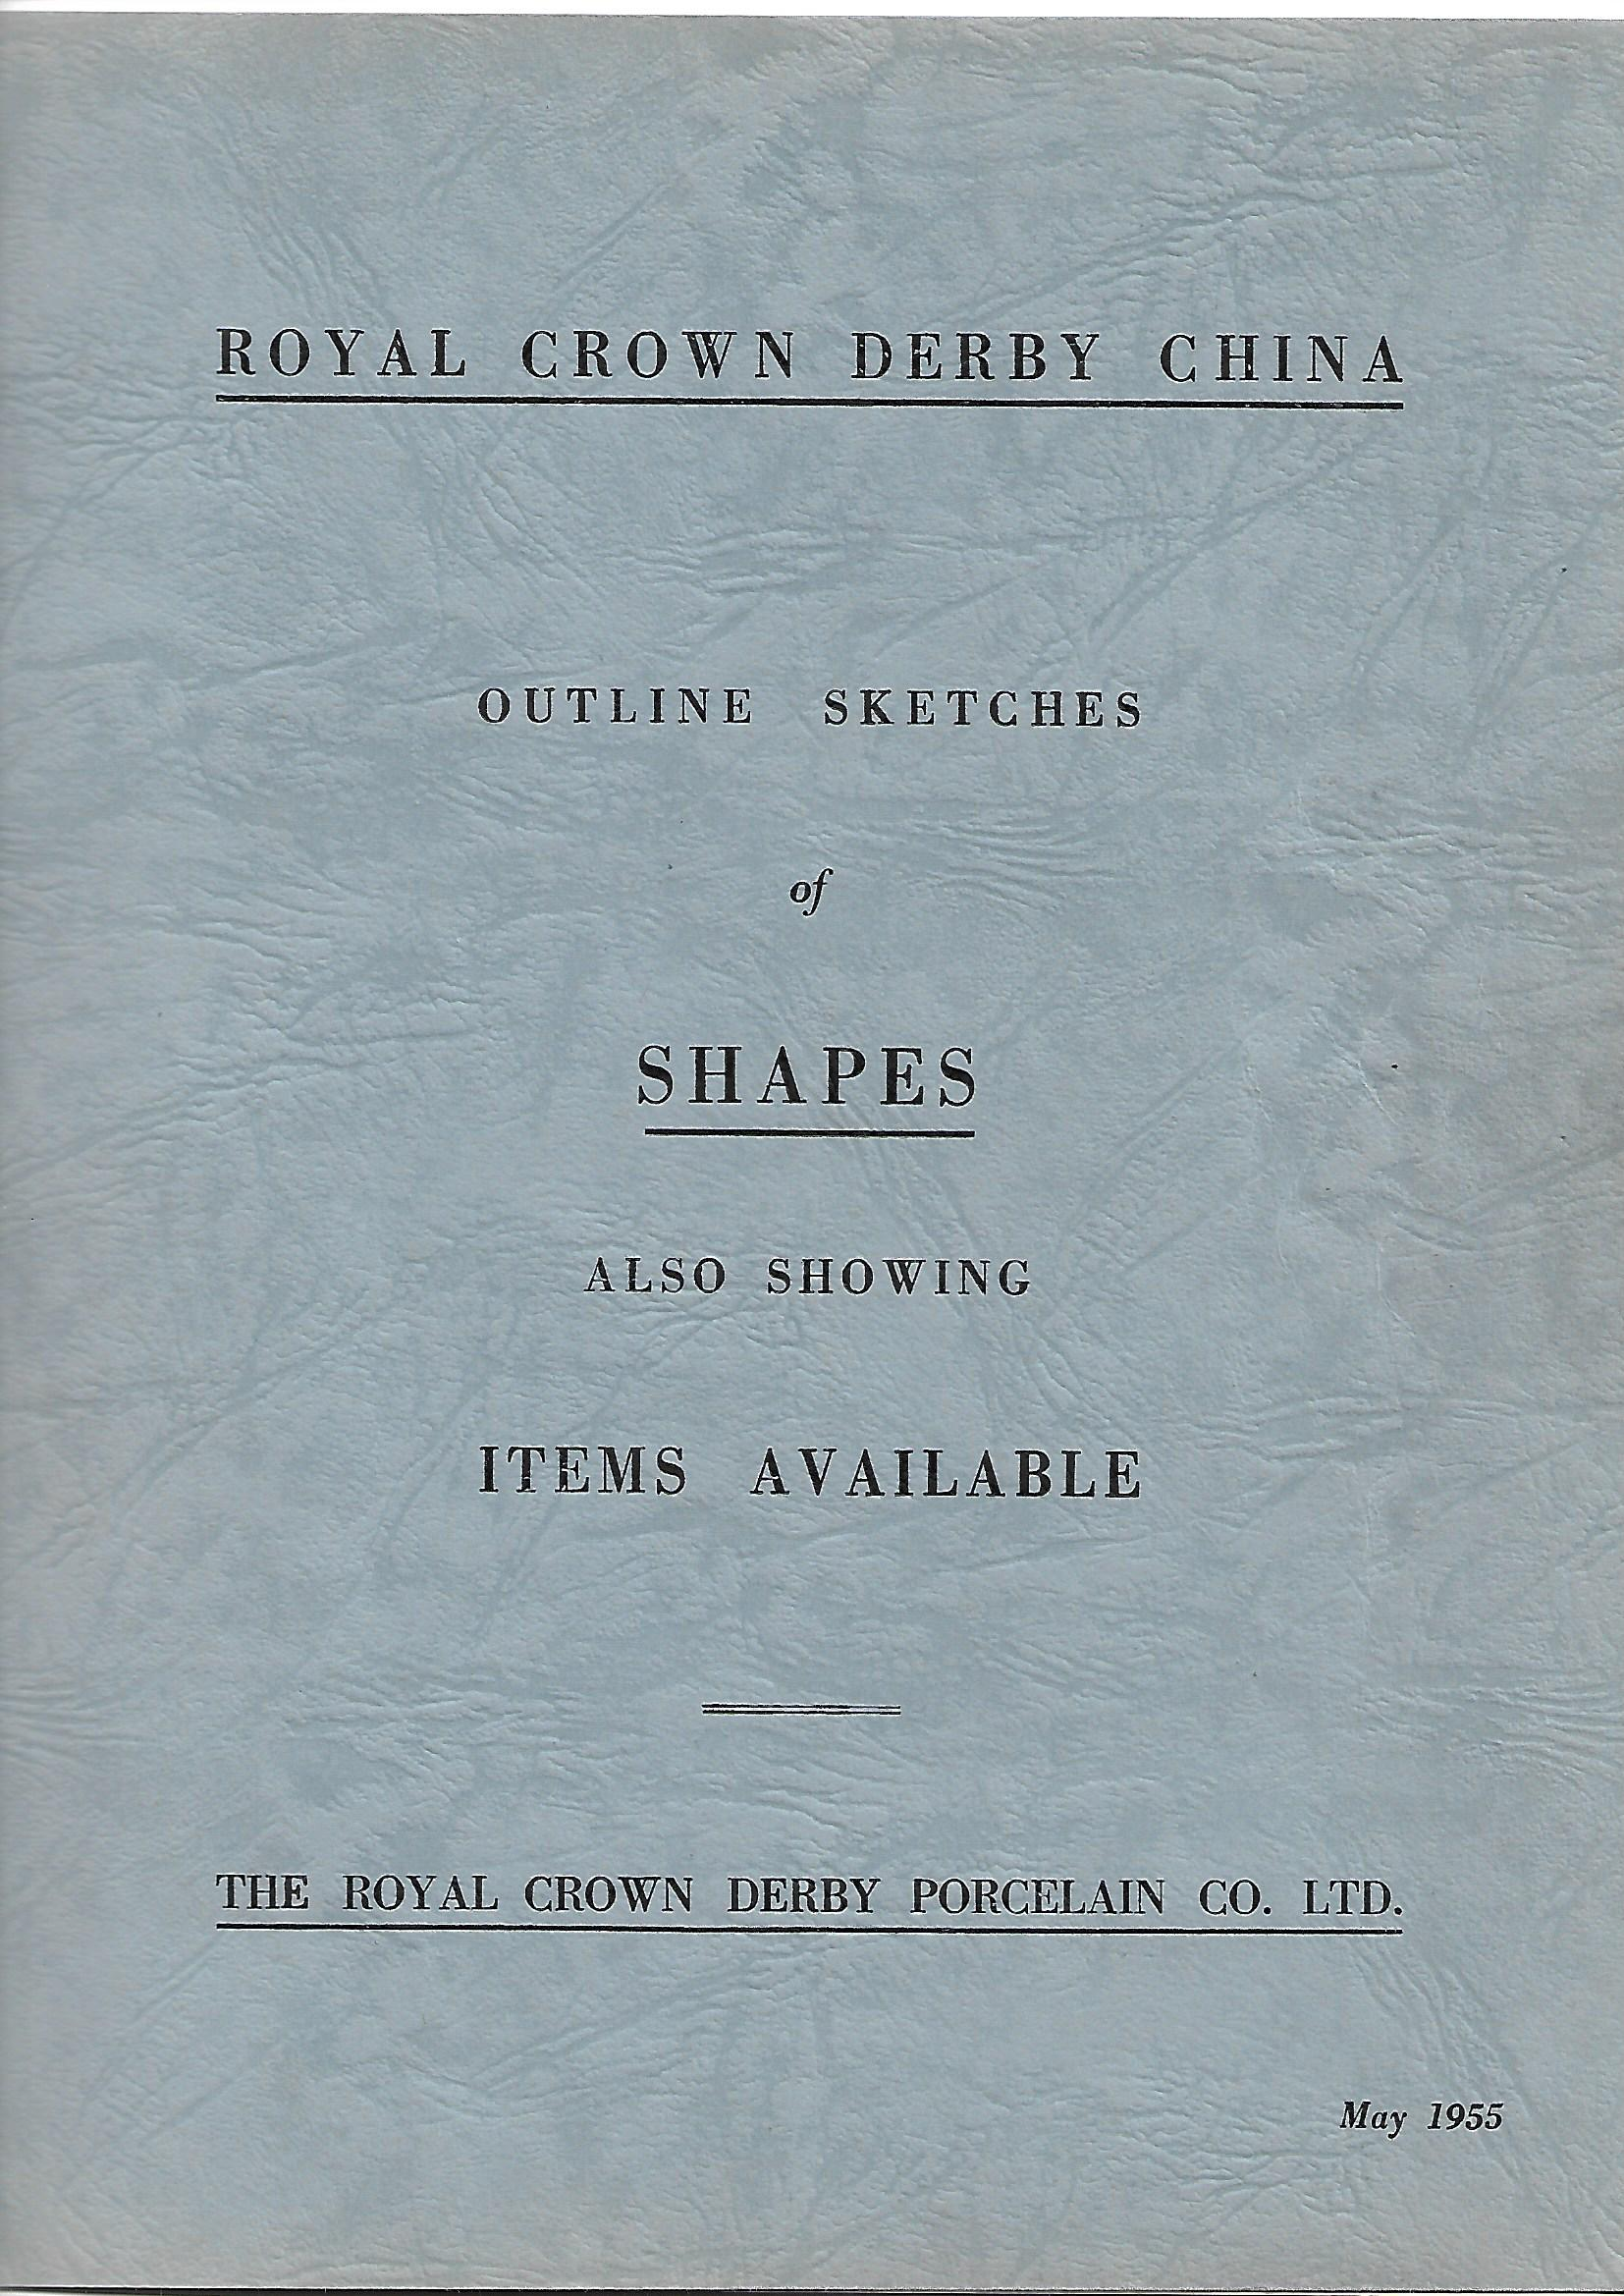 royal-crown-derby-outline-sketches-of-shapes-1955-cover